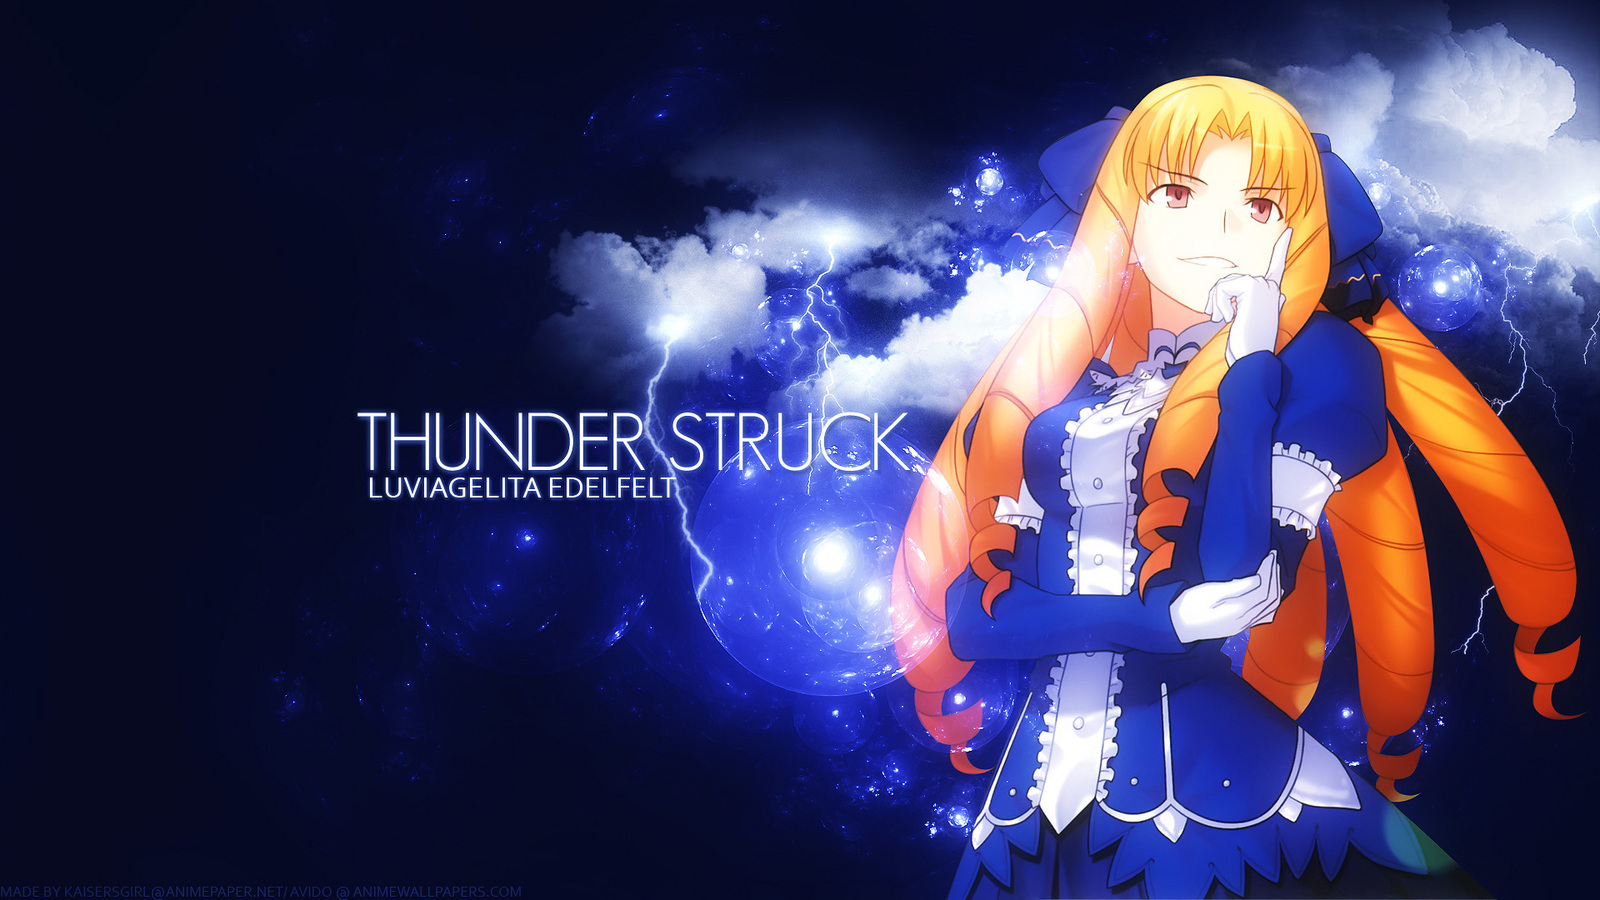 Fate/Stay Night Anime Wallpaper # 24